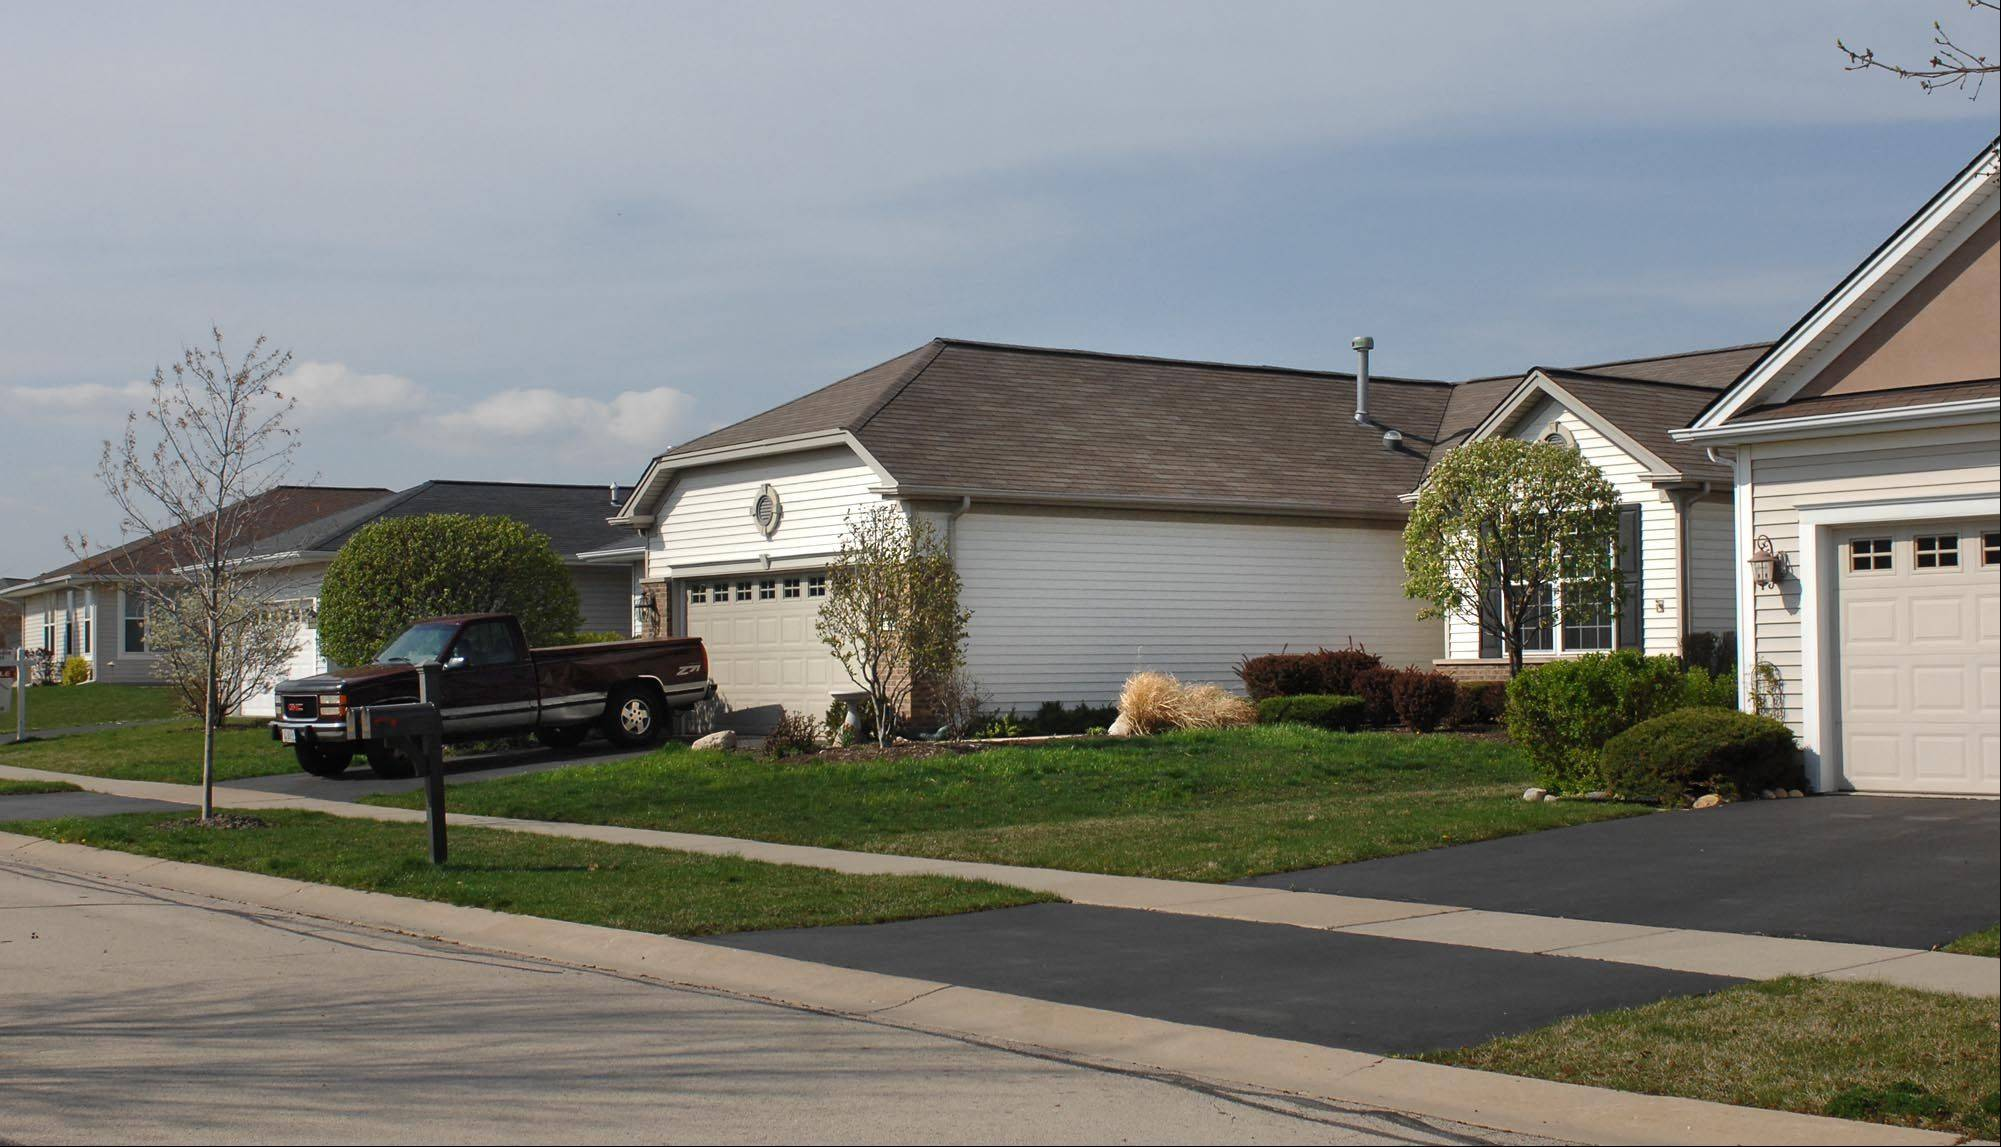 This is the home Michelle Mathieu and Robert Signorile shared in the Sun City complex in Huntley. She was beaten in the home and died six days later; he has been charged with first-degree murder.